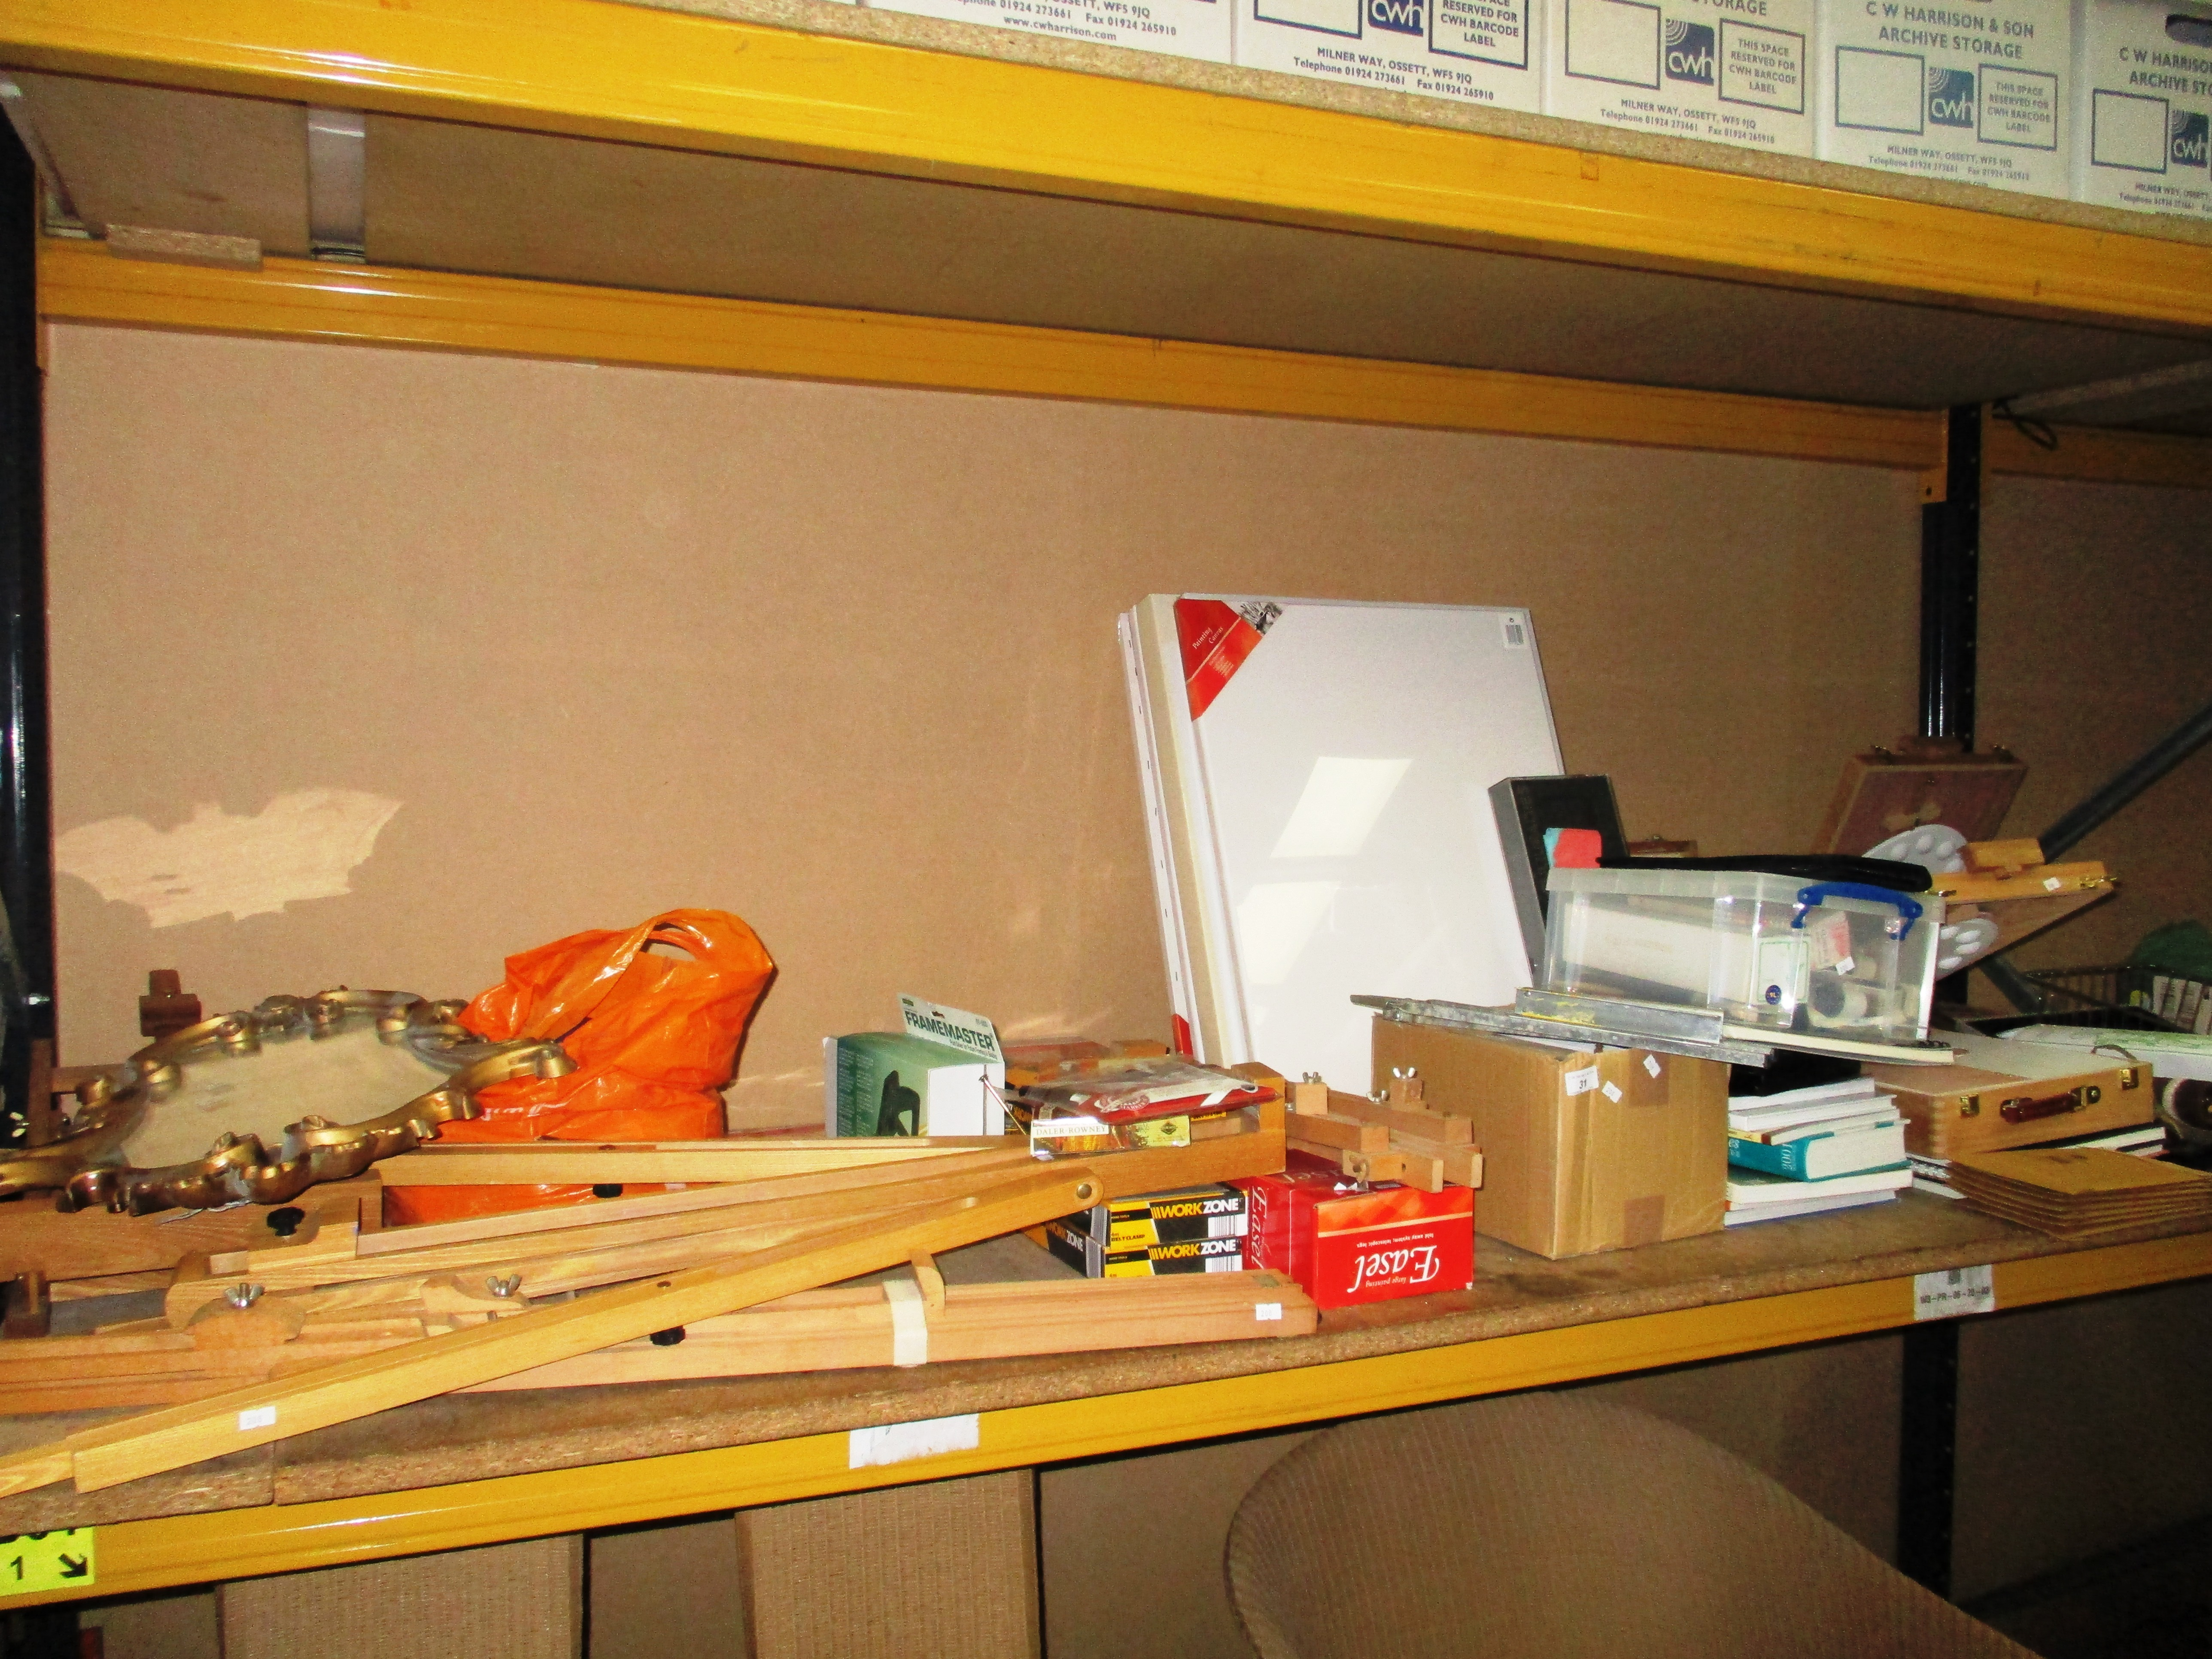 Lot 31 - Contents to tray an extremely large quantity of artists equipment and materials including easels,